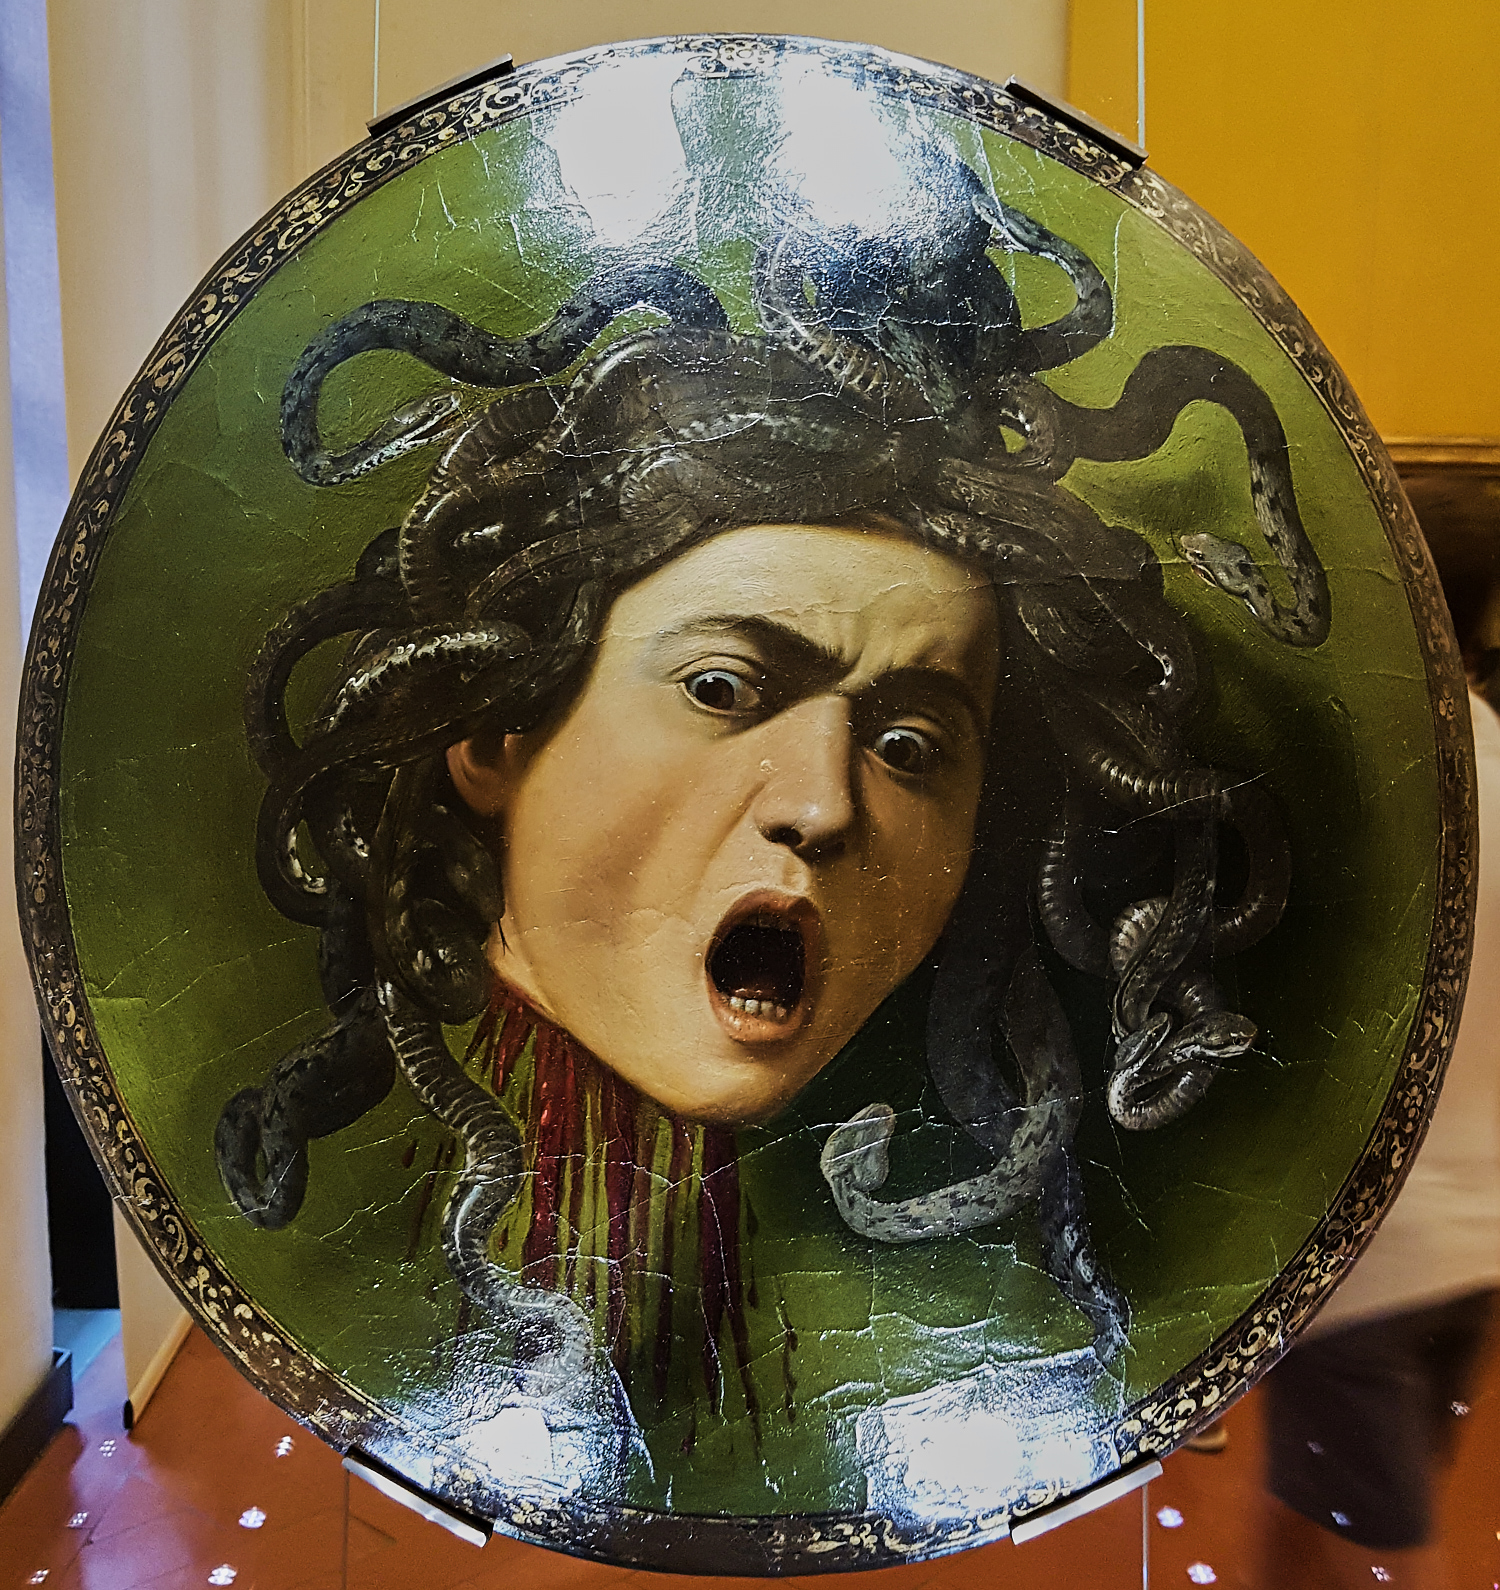 Medusa by Carravaggio 1597 by Thorkil in Thorkil